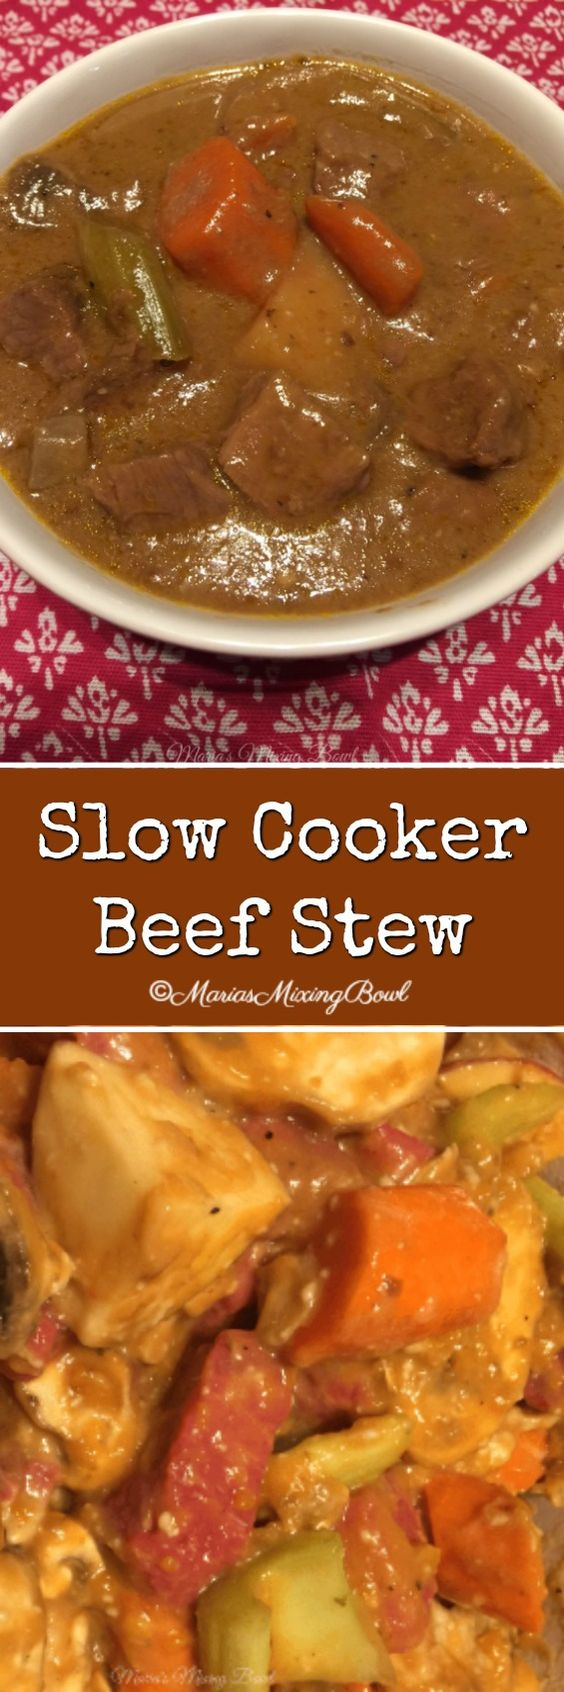 Slow Cooker Beef Stew - Everyone's favorite comfort food. On a chilly night there is nothing better than a stew or soup. Packed with delicious flavor, vegetables and tender beef.#mariasmixingbowl #beefstew #sloww cooker